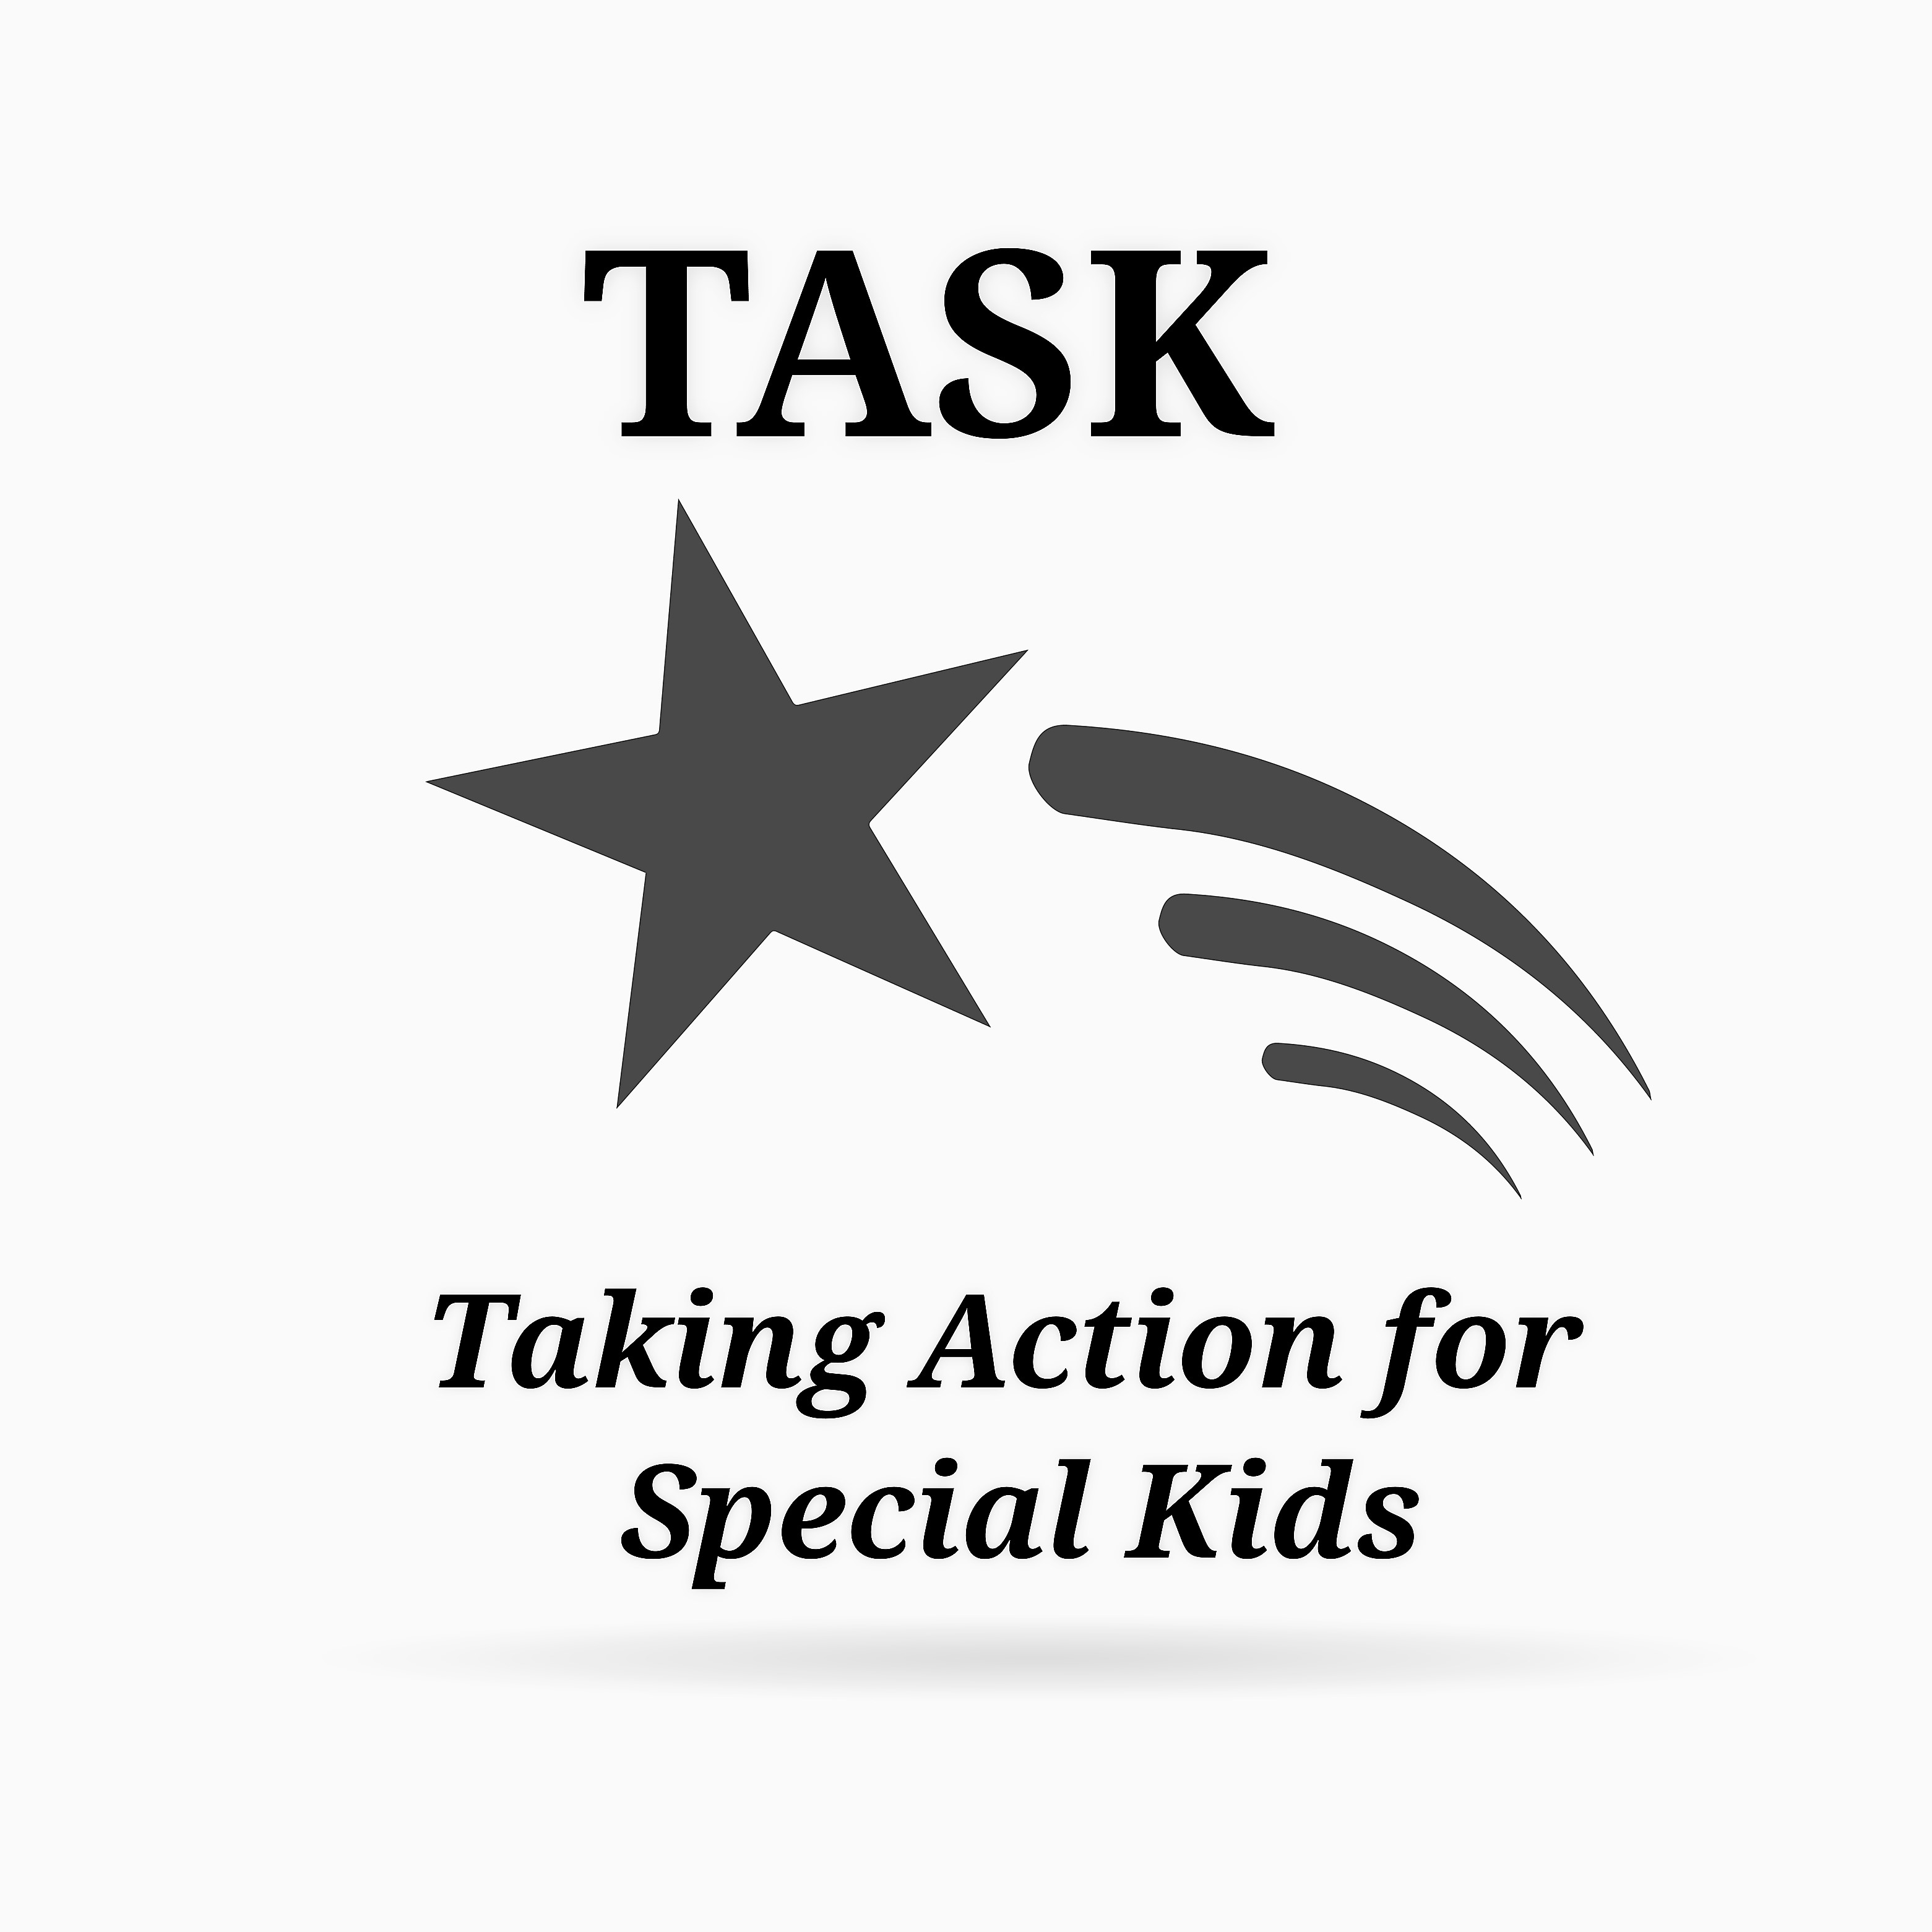 TASK Taking Action for Special Kids